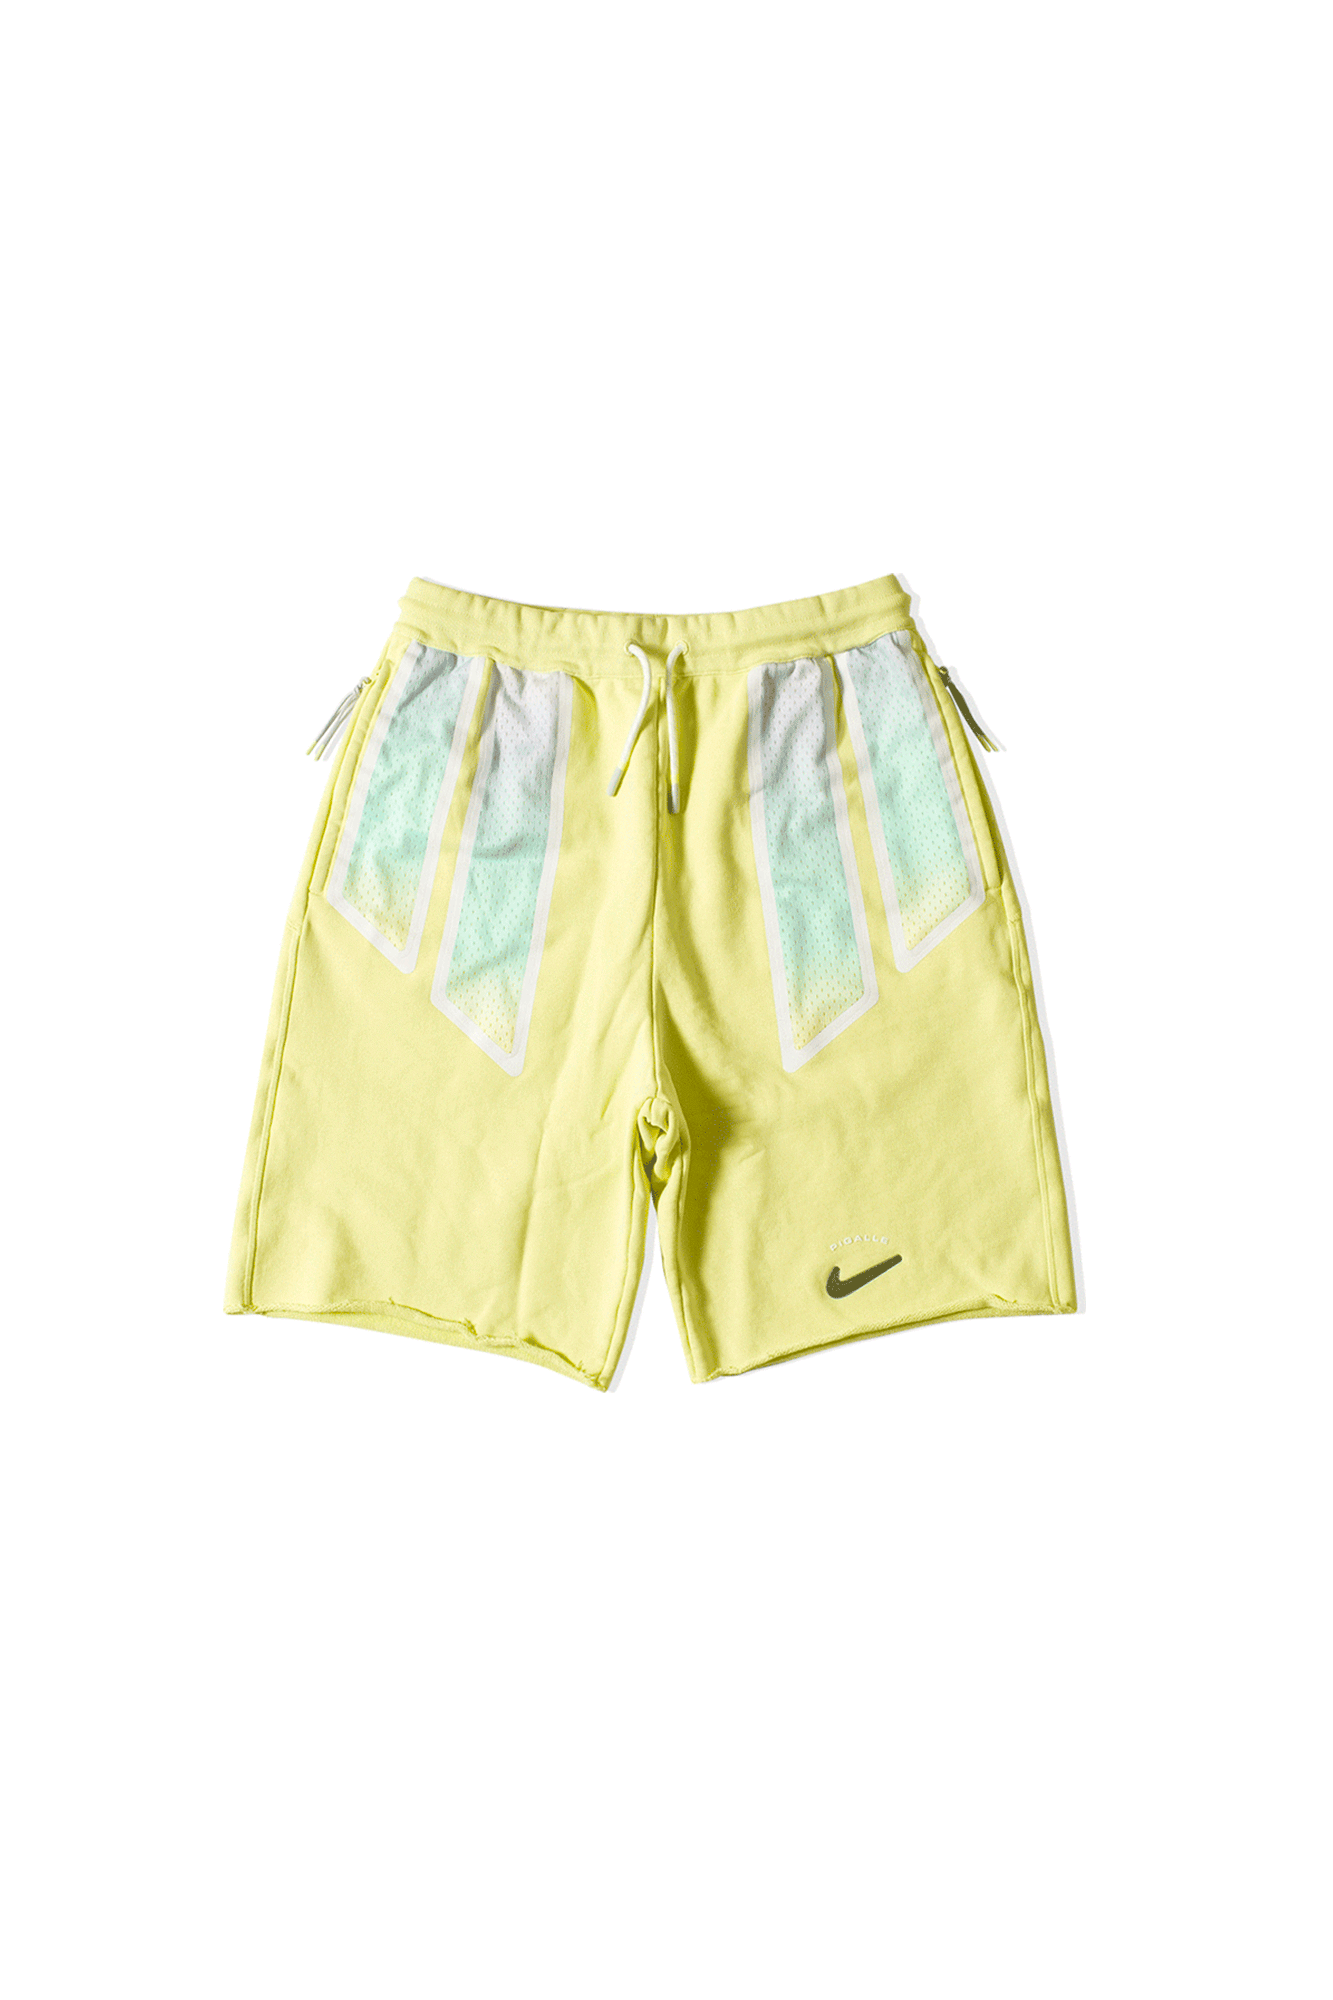 Short x Pigalle Yellow